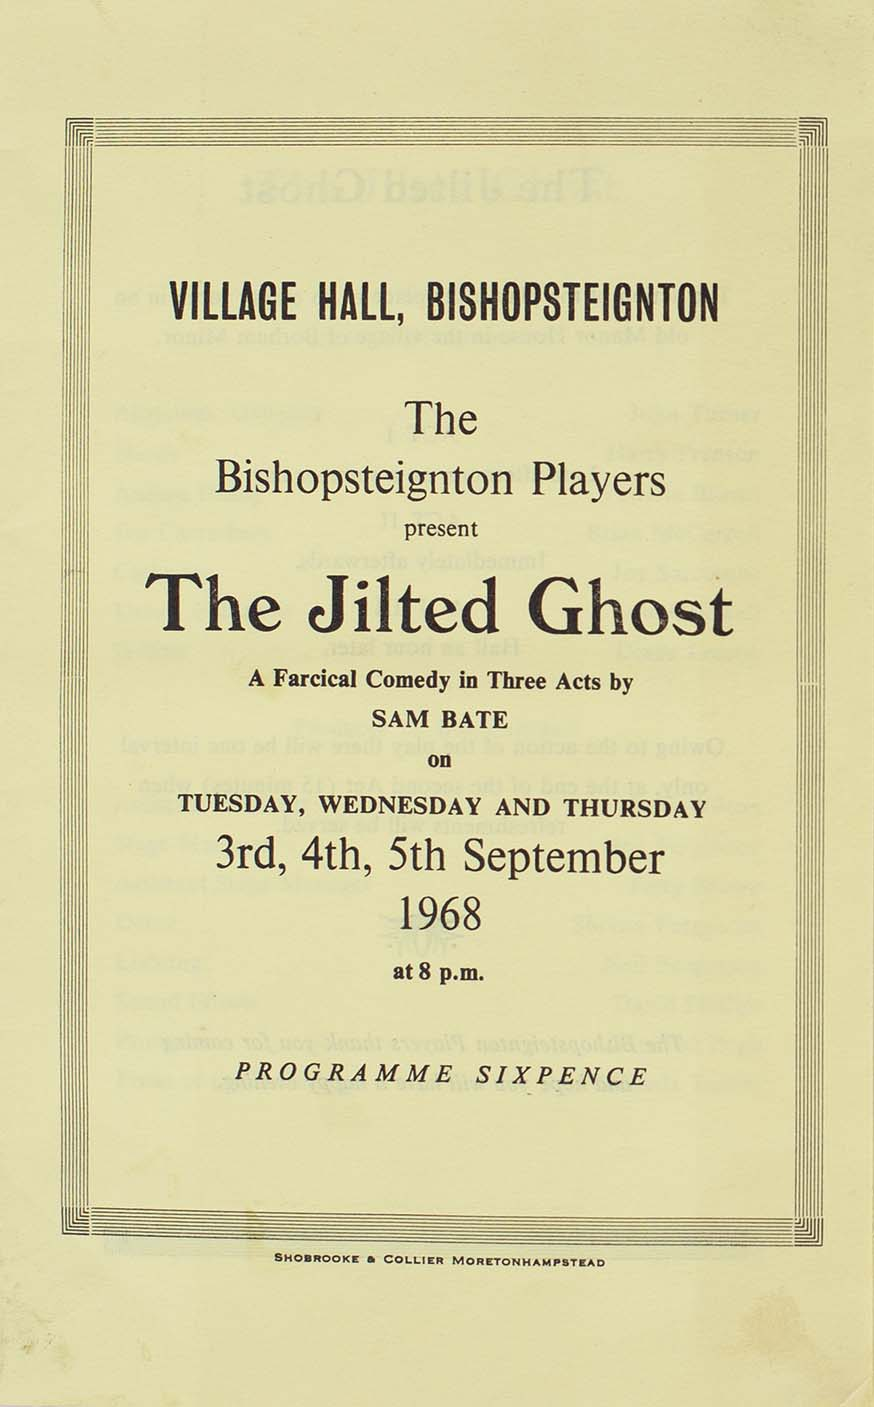 Programme for the play 'The Jilted Ghost' presented by Bishopsteignton Players front